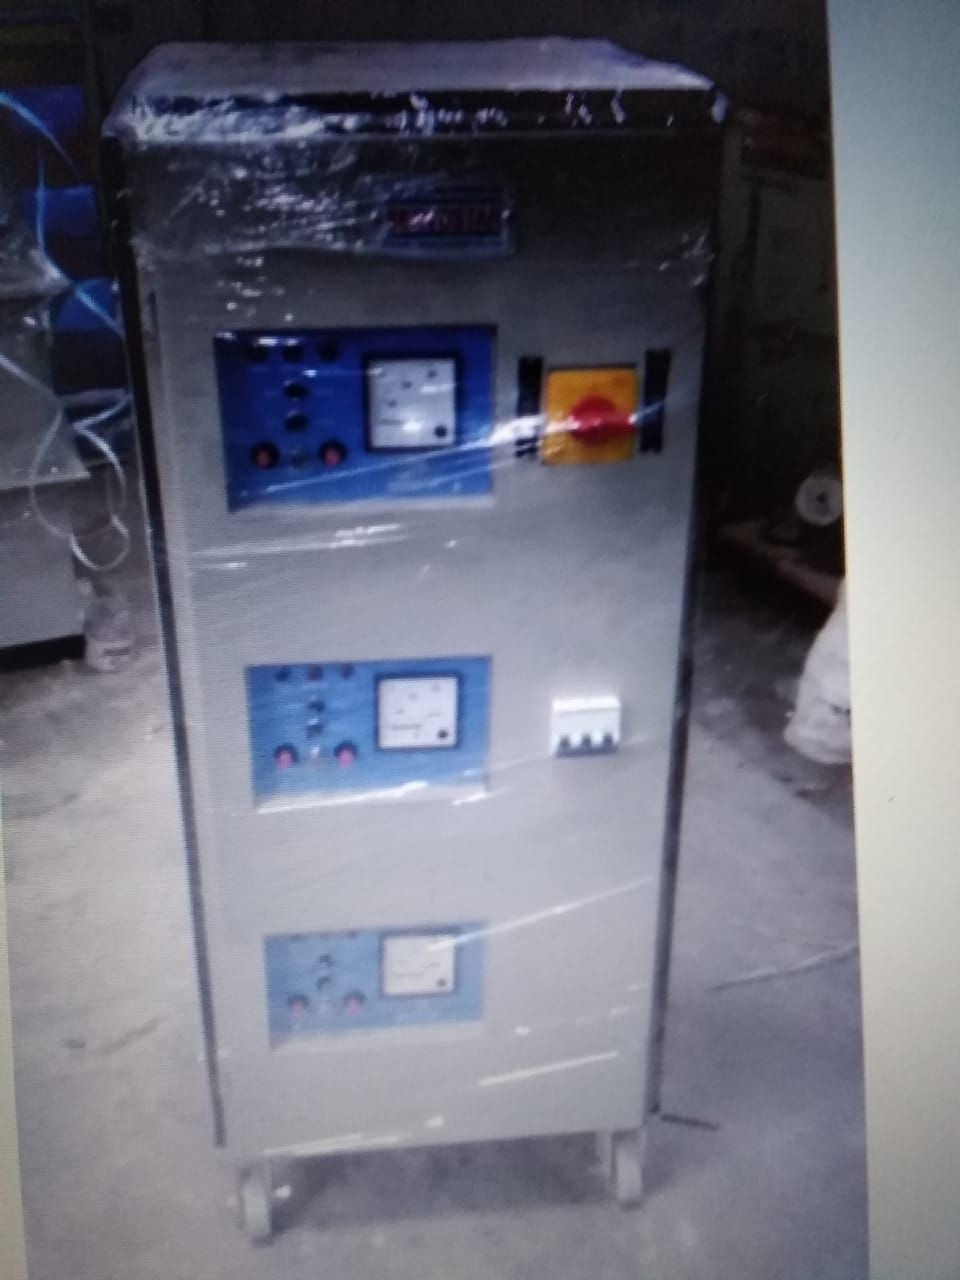 Servo Stabilizer 10kva Price In 2020 Stability Household Items The Unit